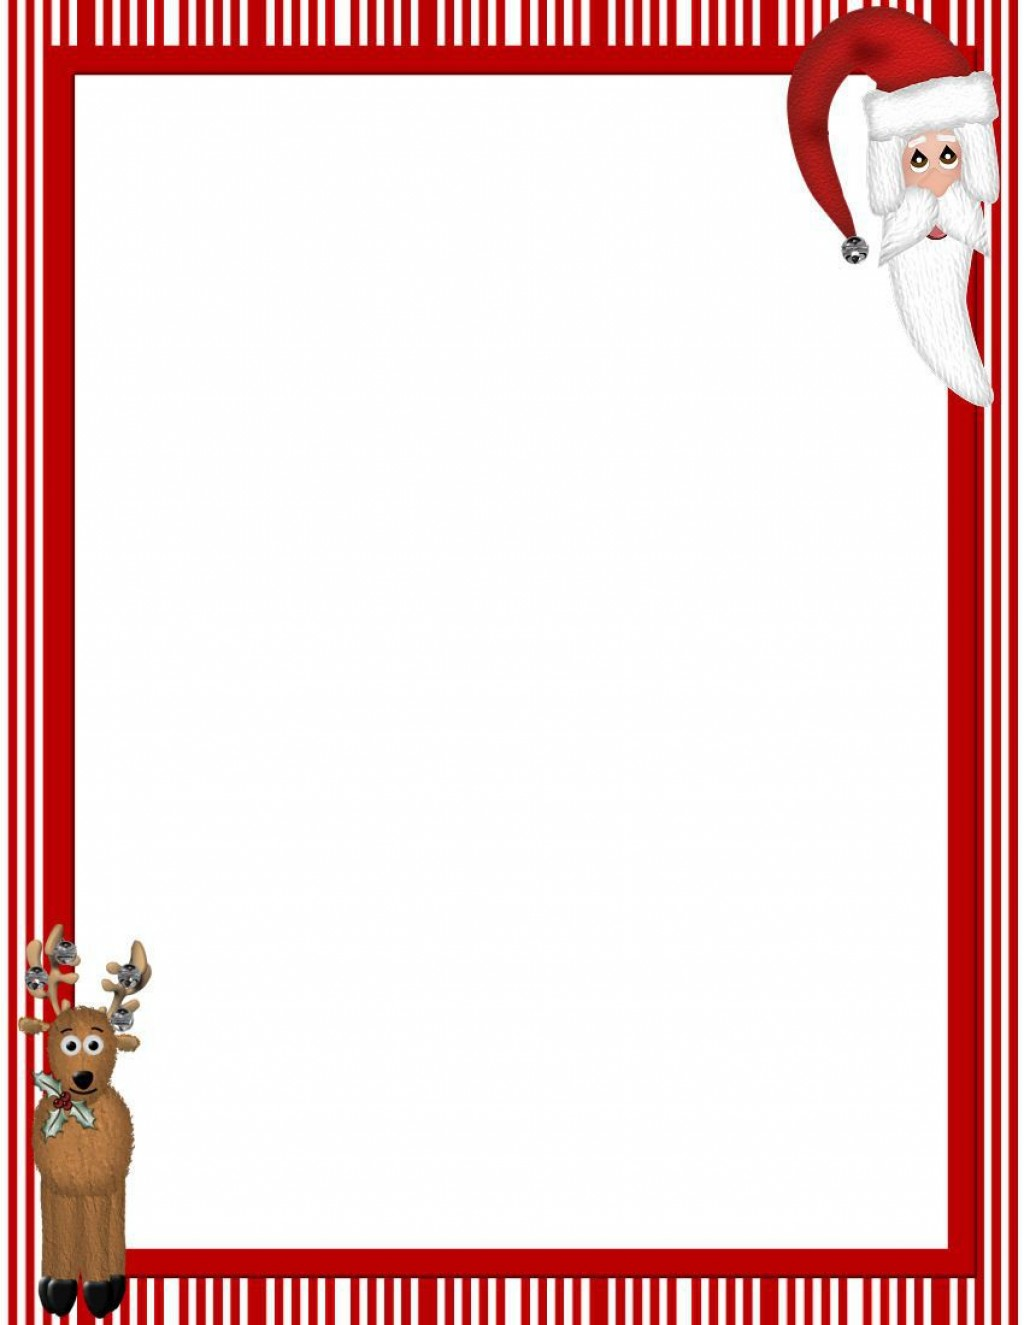 007 Fascinating Free Christma Template For Word Concept  Holiday Party Invitation Recipe Card Printable StationeryLarge